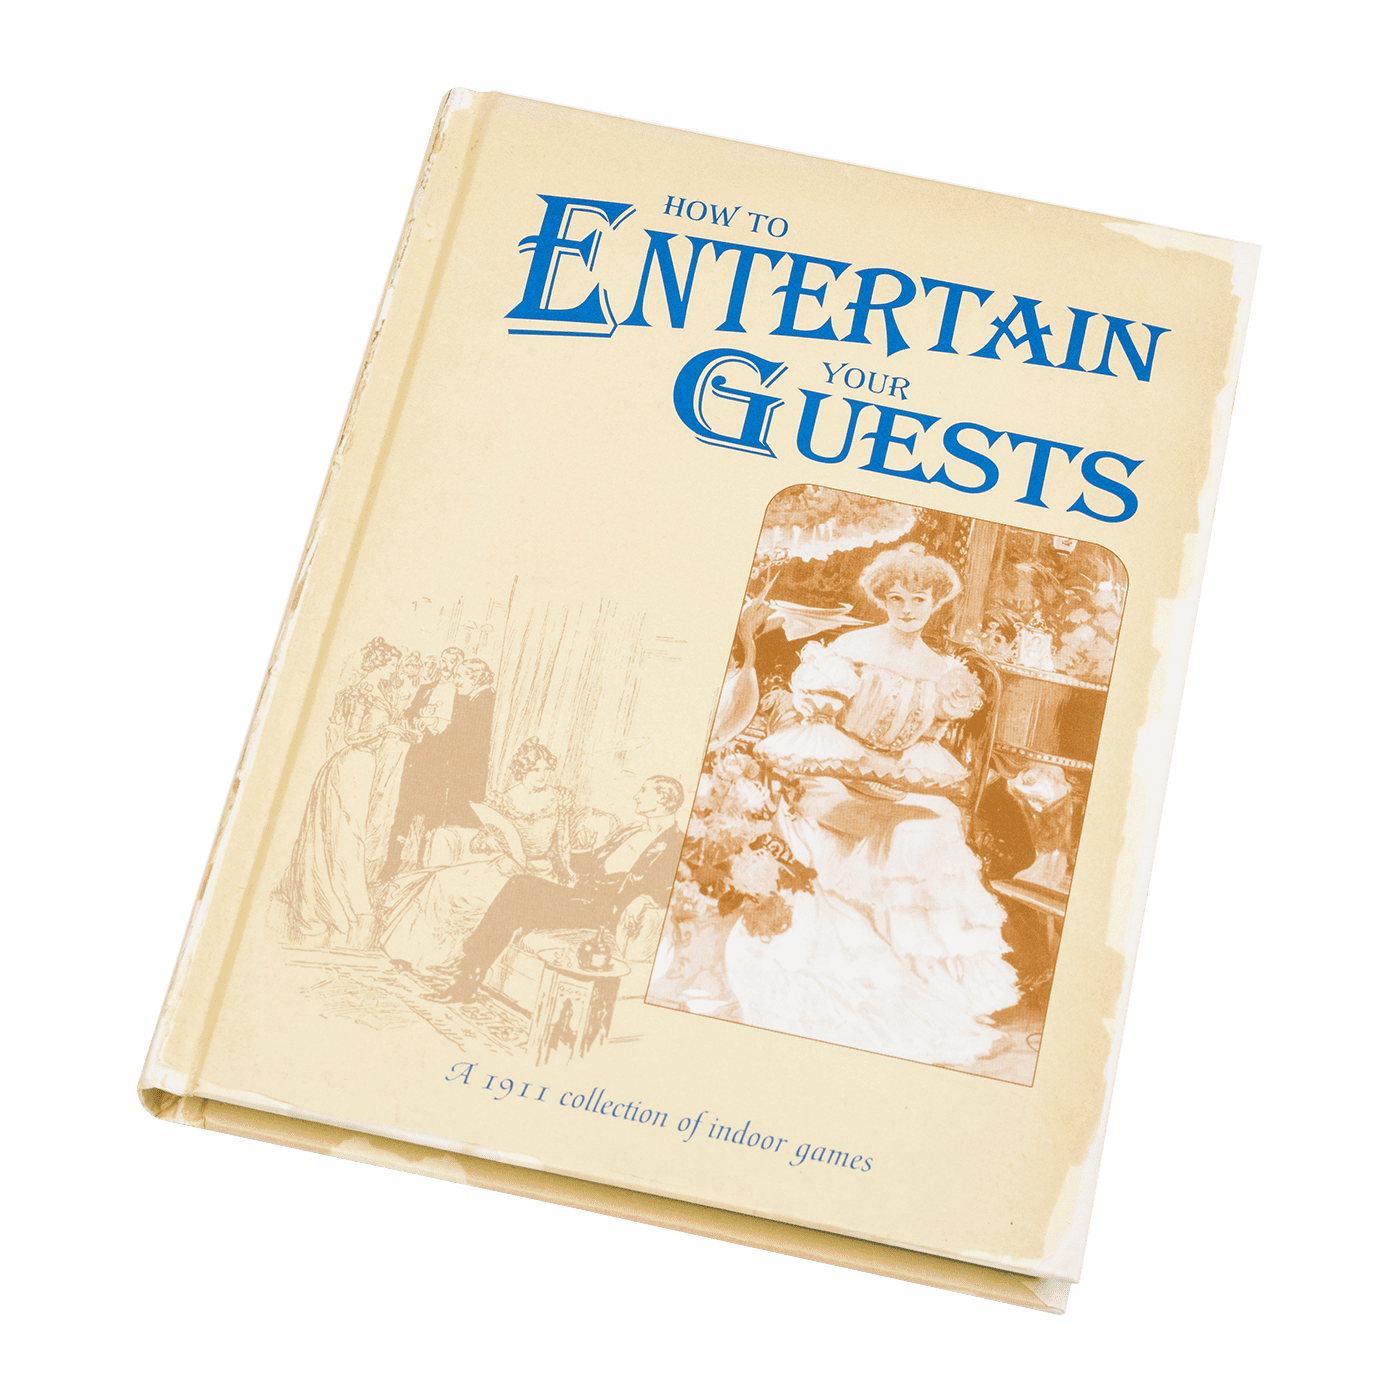 how to entertain your guests | harriets cafe tearooms